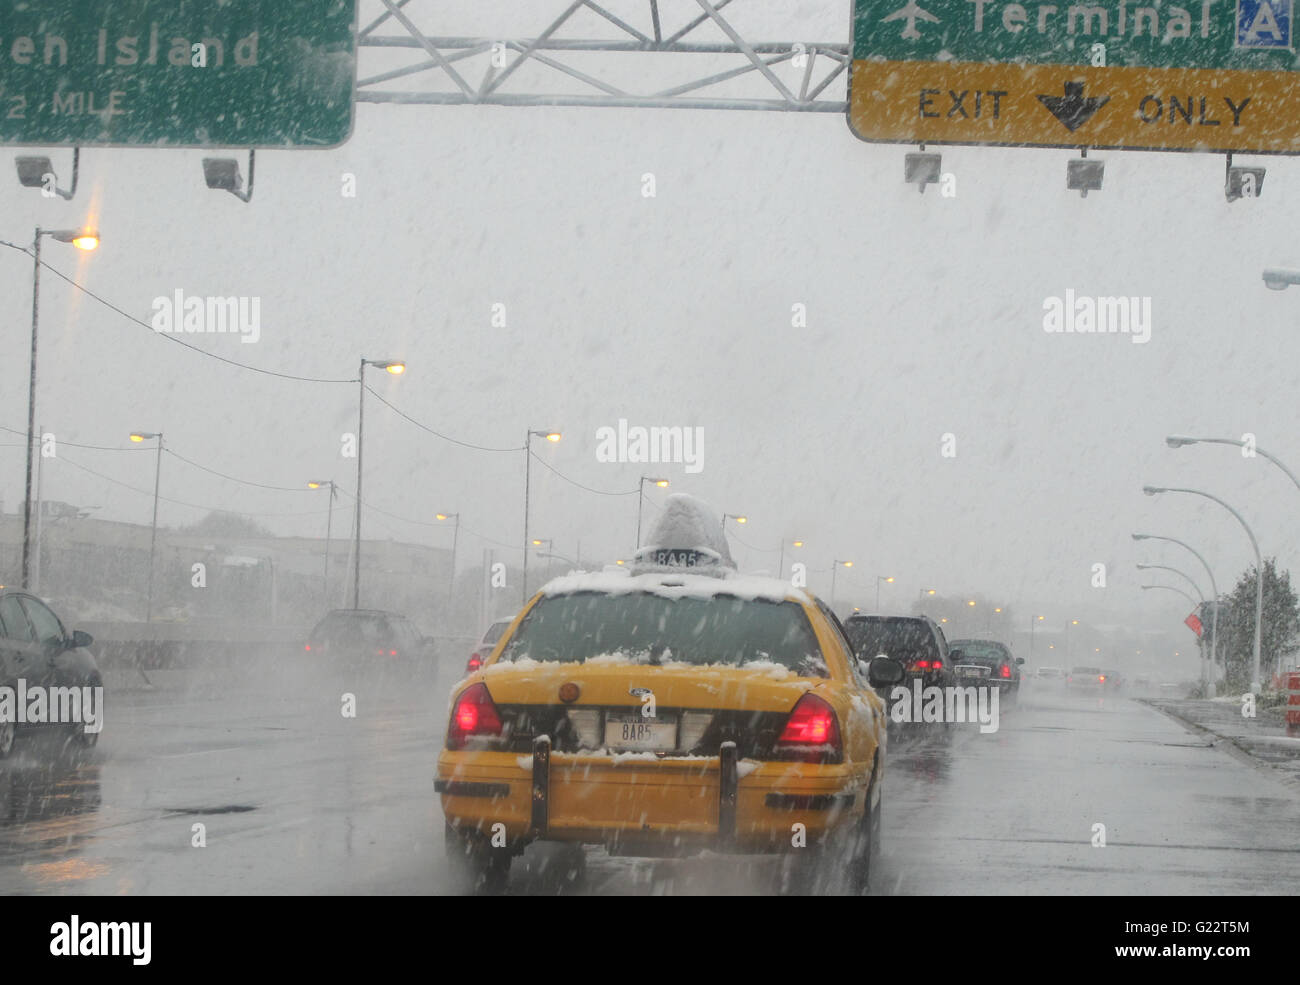 New York City yellowcab negotiates slippery conditions during snow storm on Grand Central Parkway - Stock Image